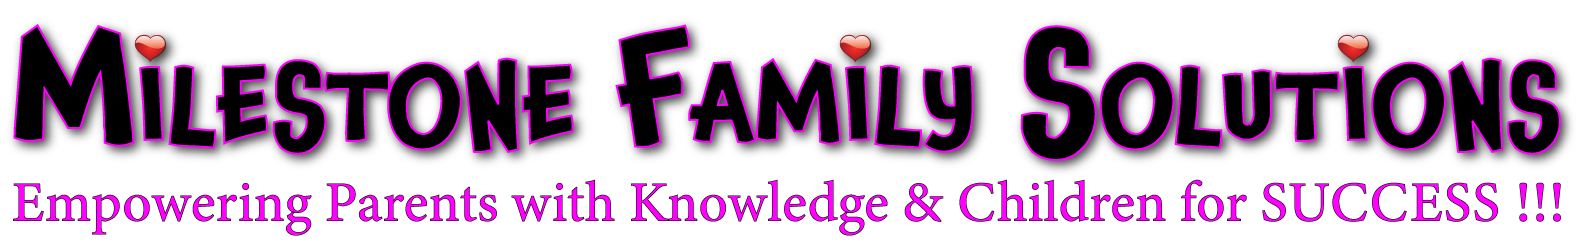 Milestone Family Solutions Empowering Parents and Children